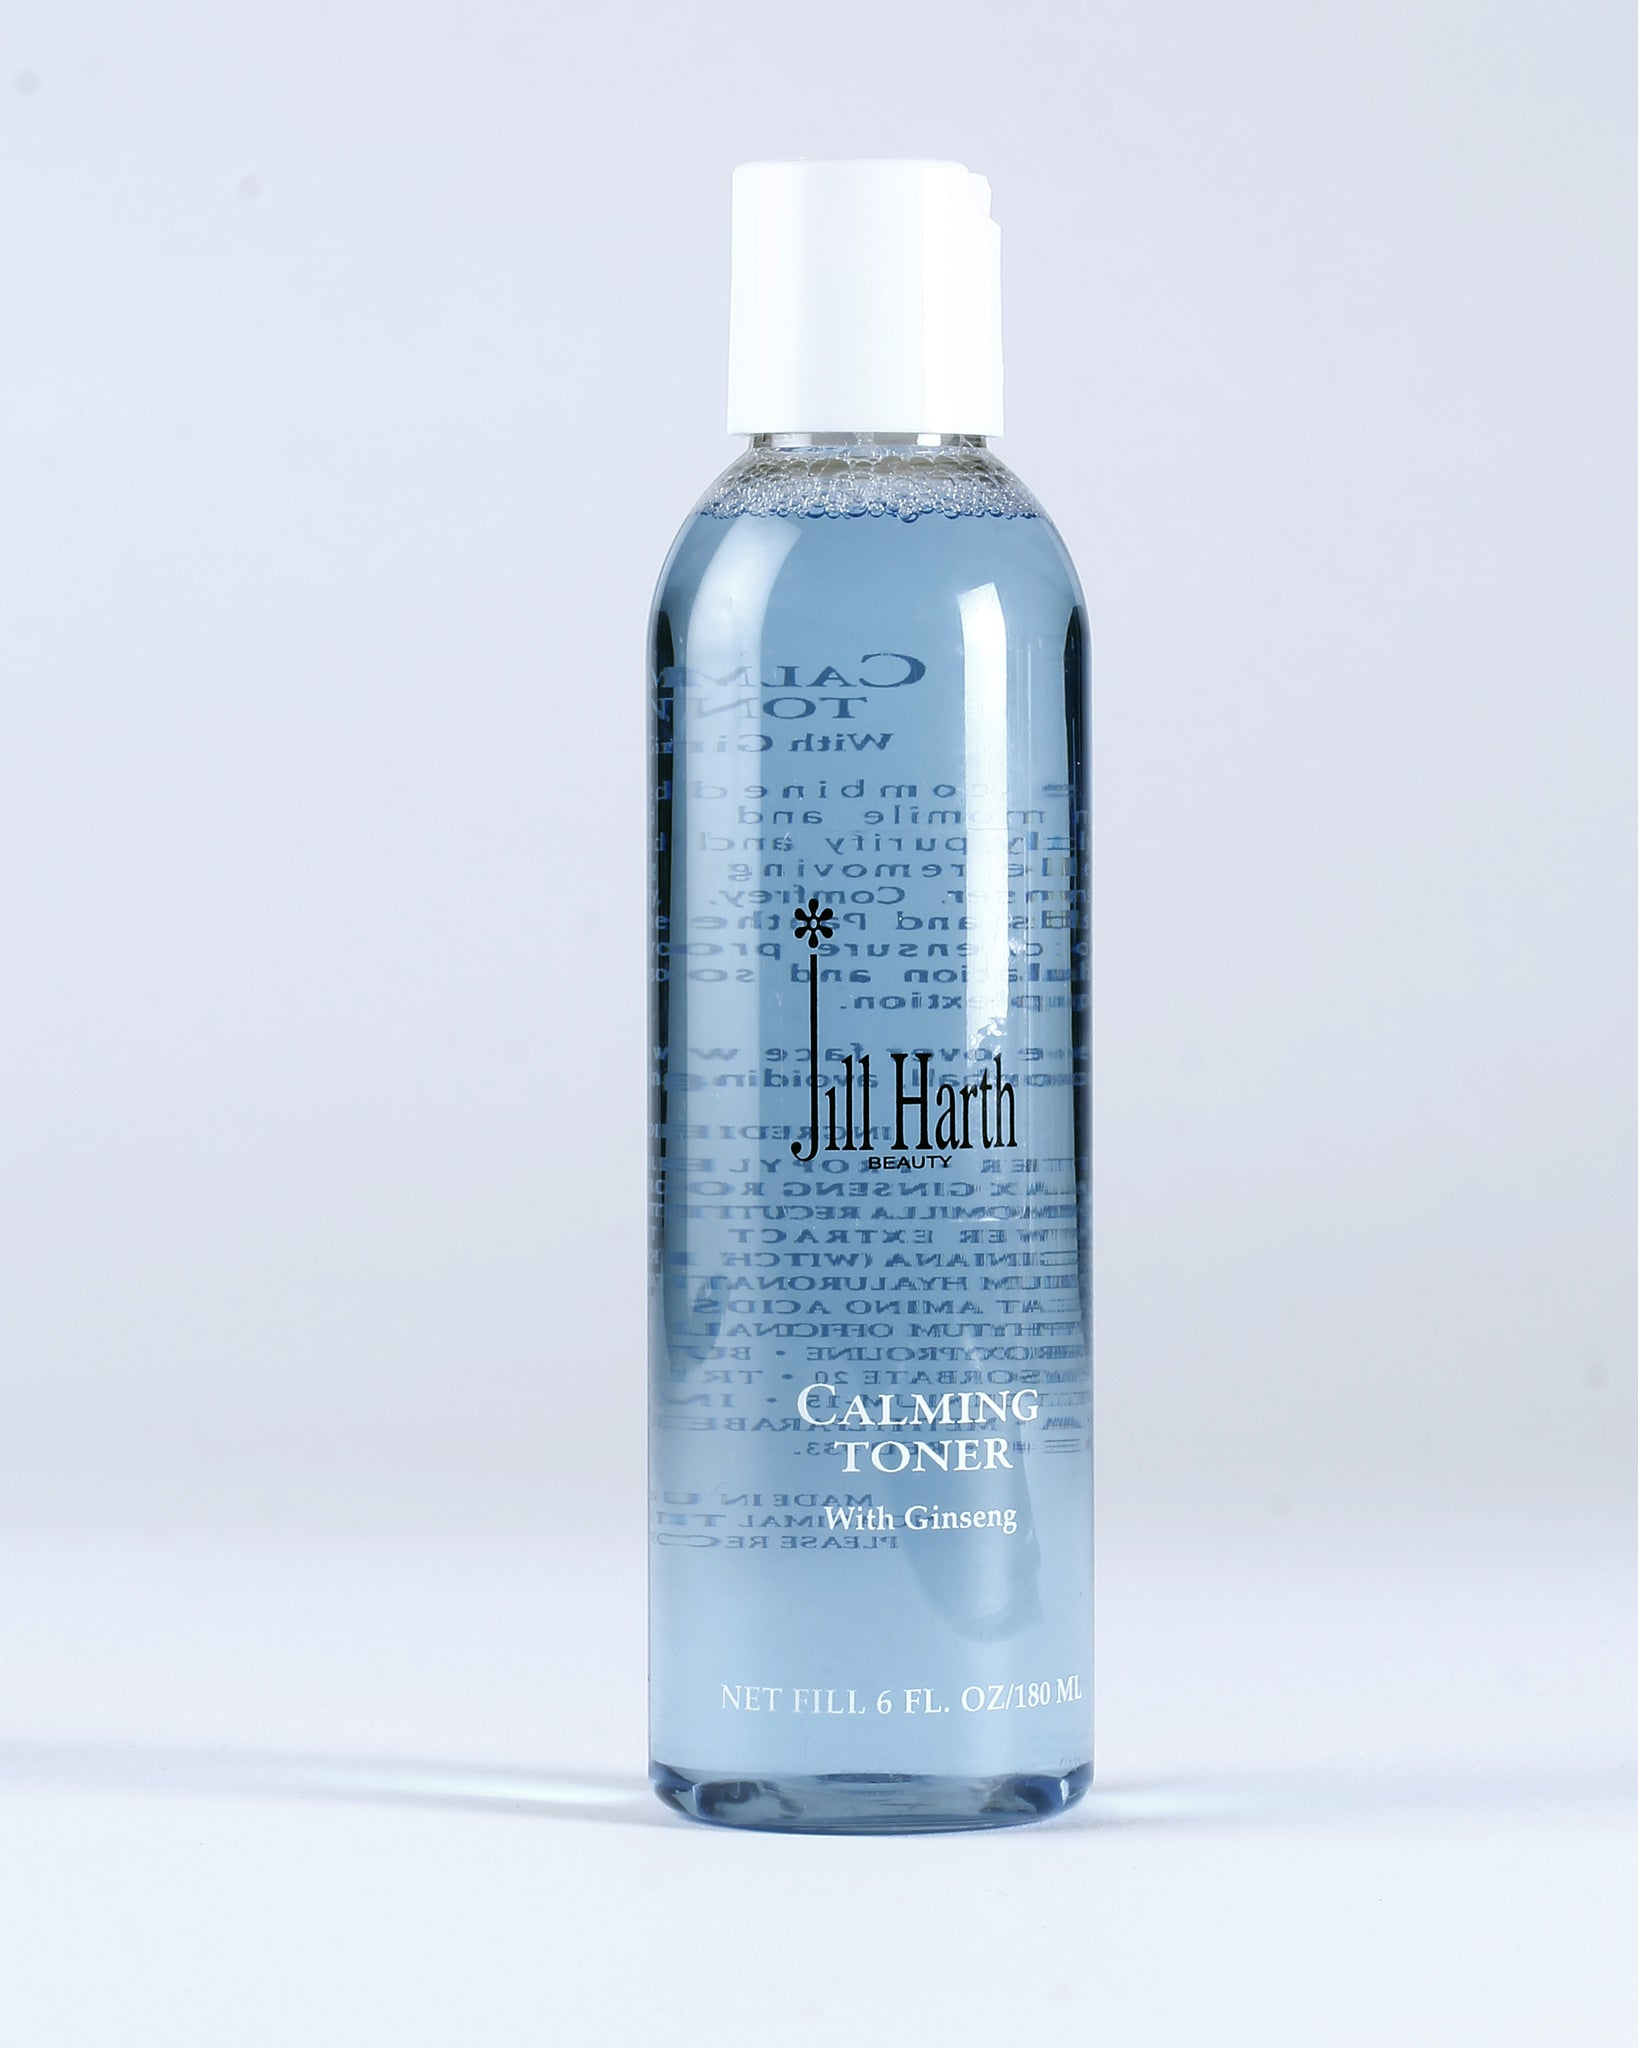 Calming Toner with Ginseng